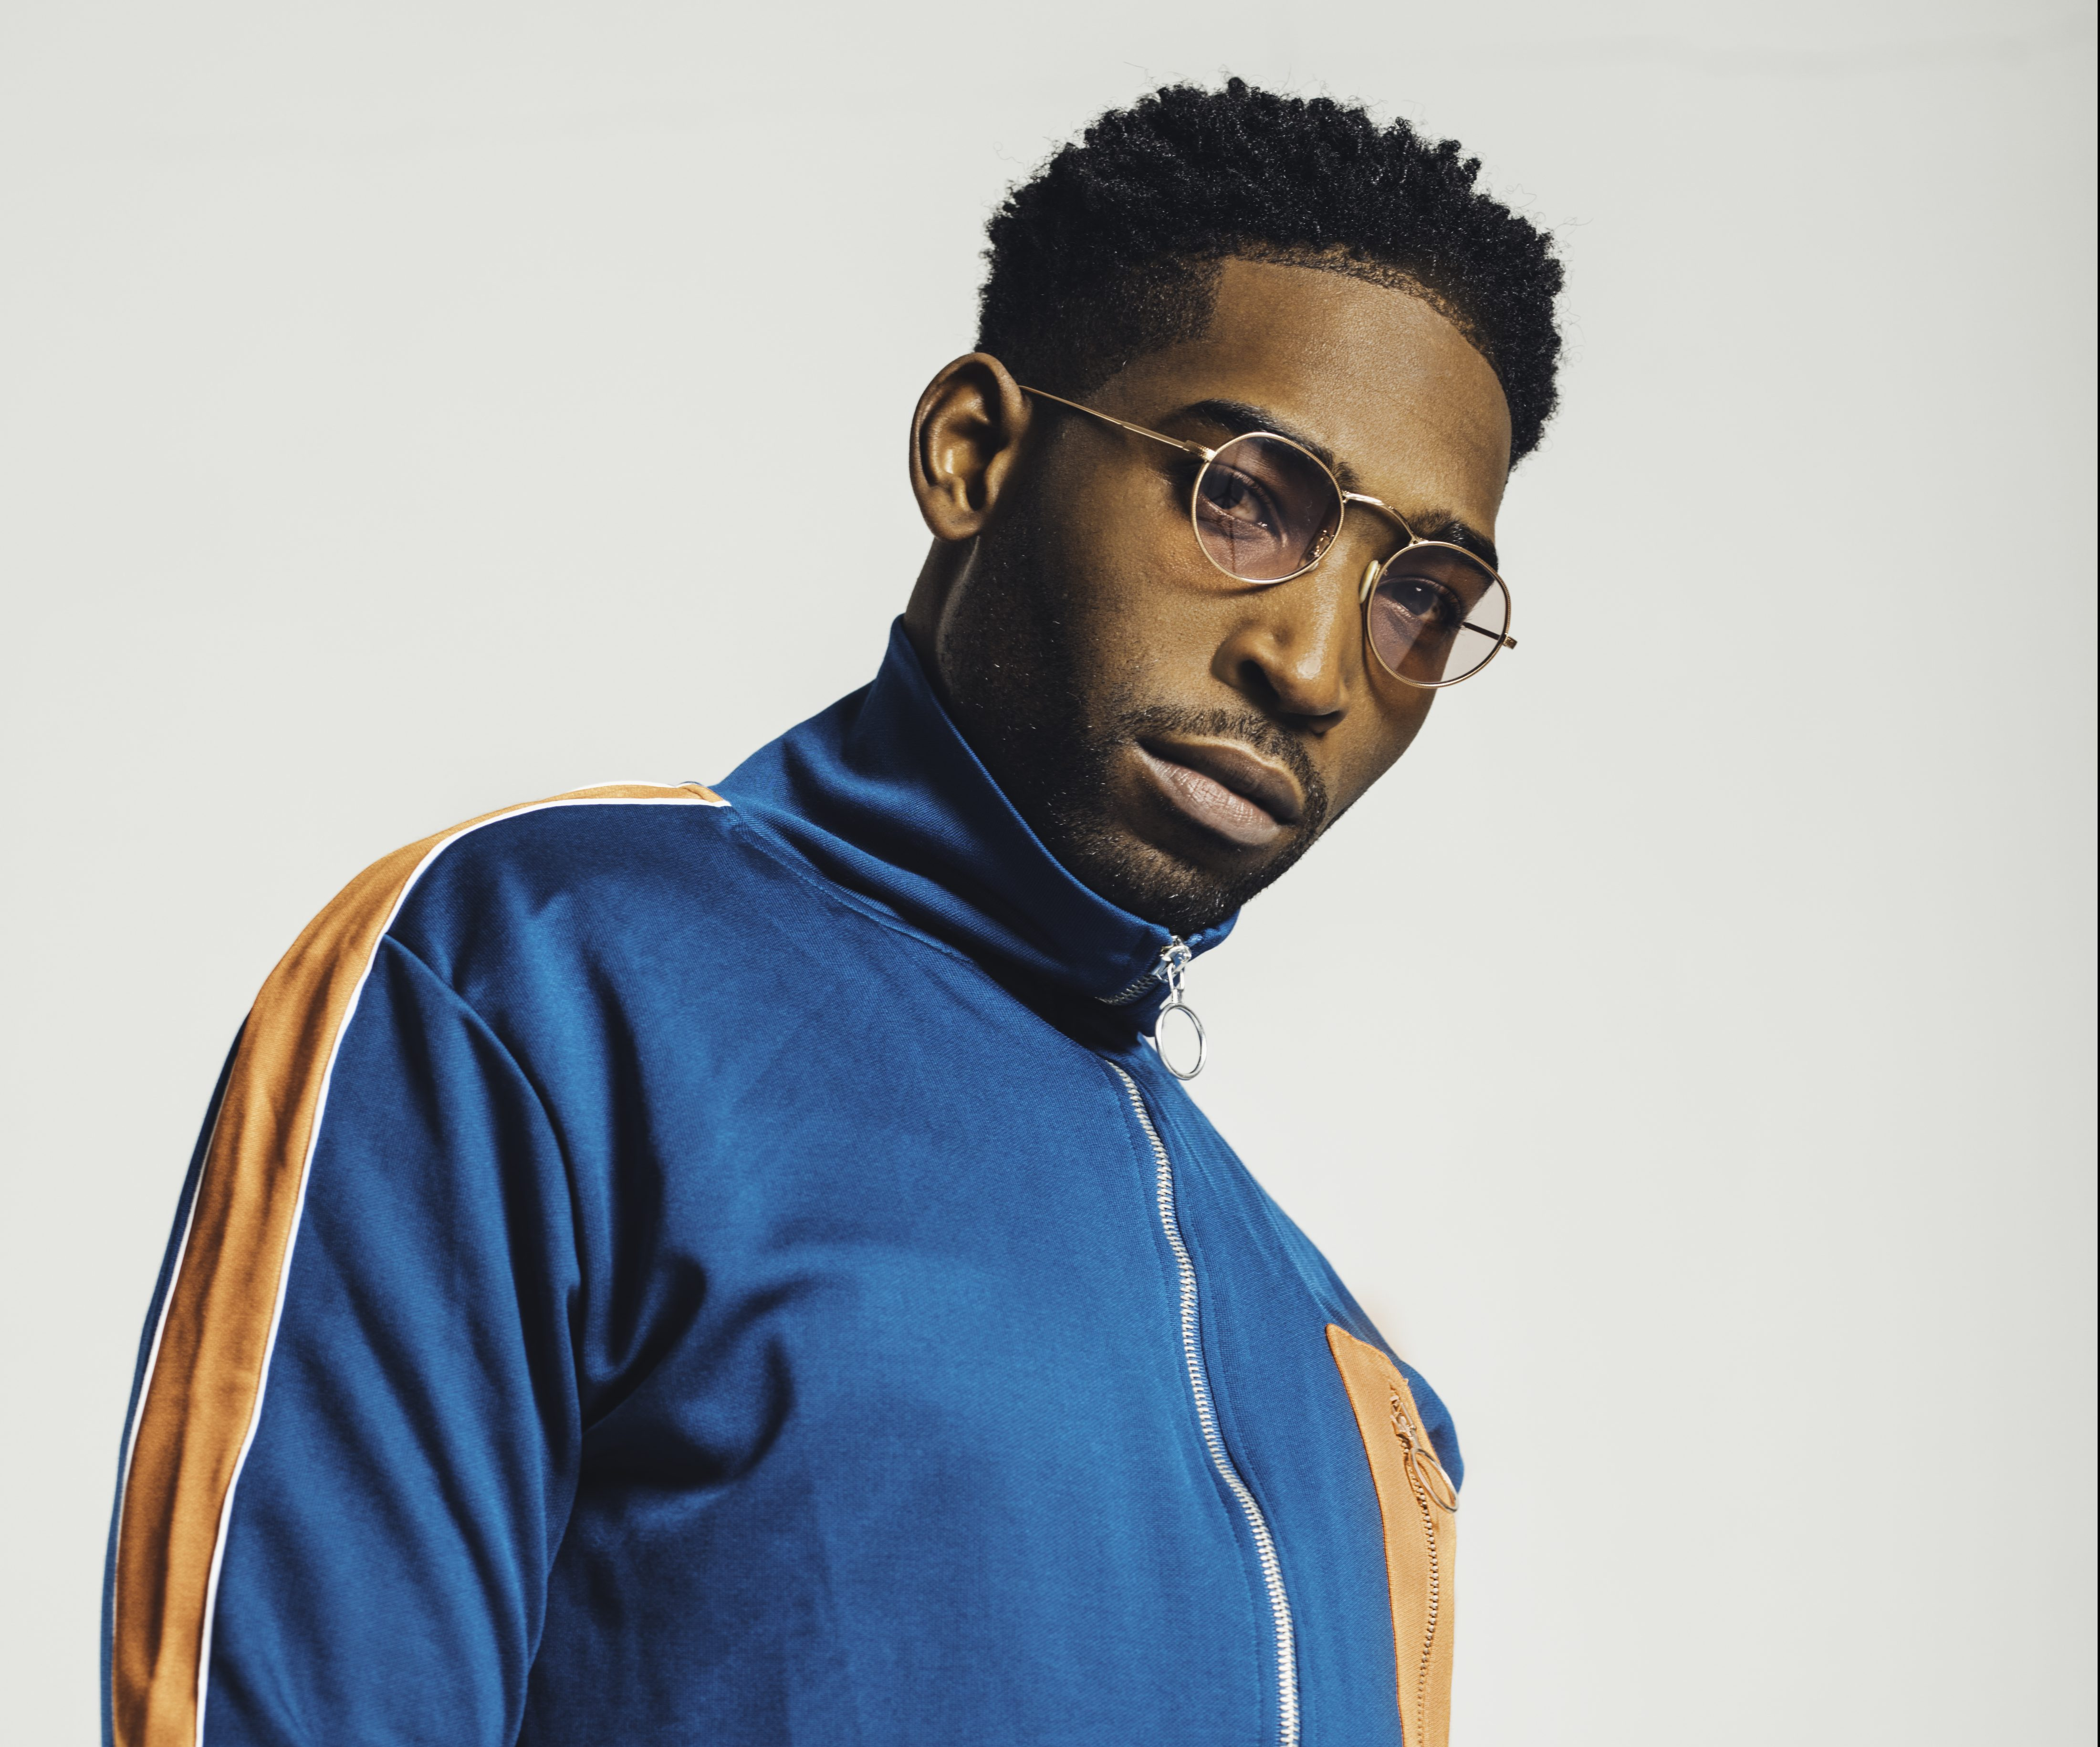 Tinie Tempah says his fashion inspires his music as he searches for next groundbreaking talent